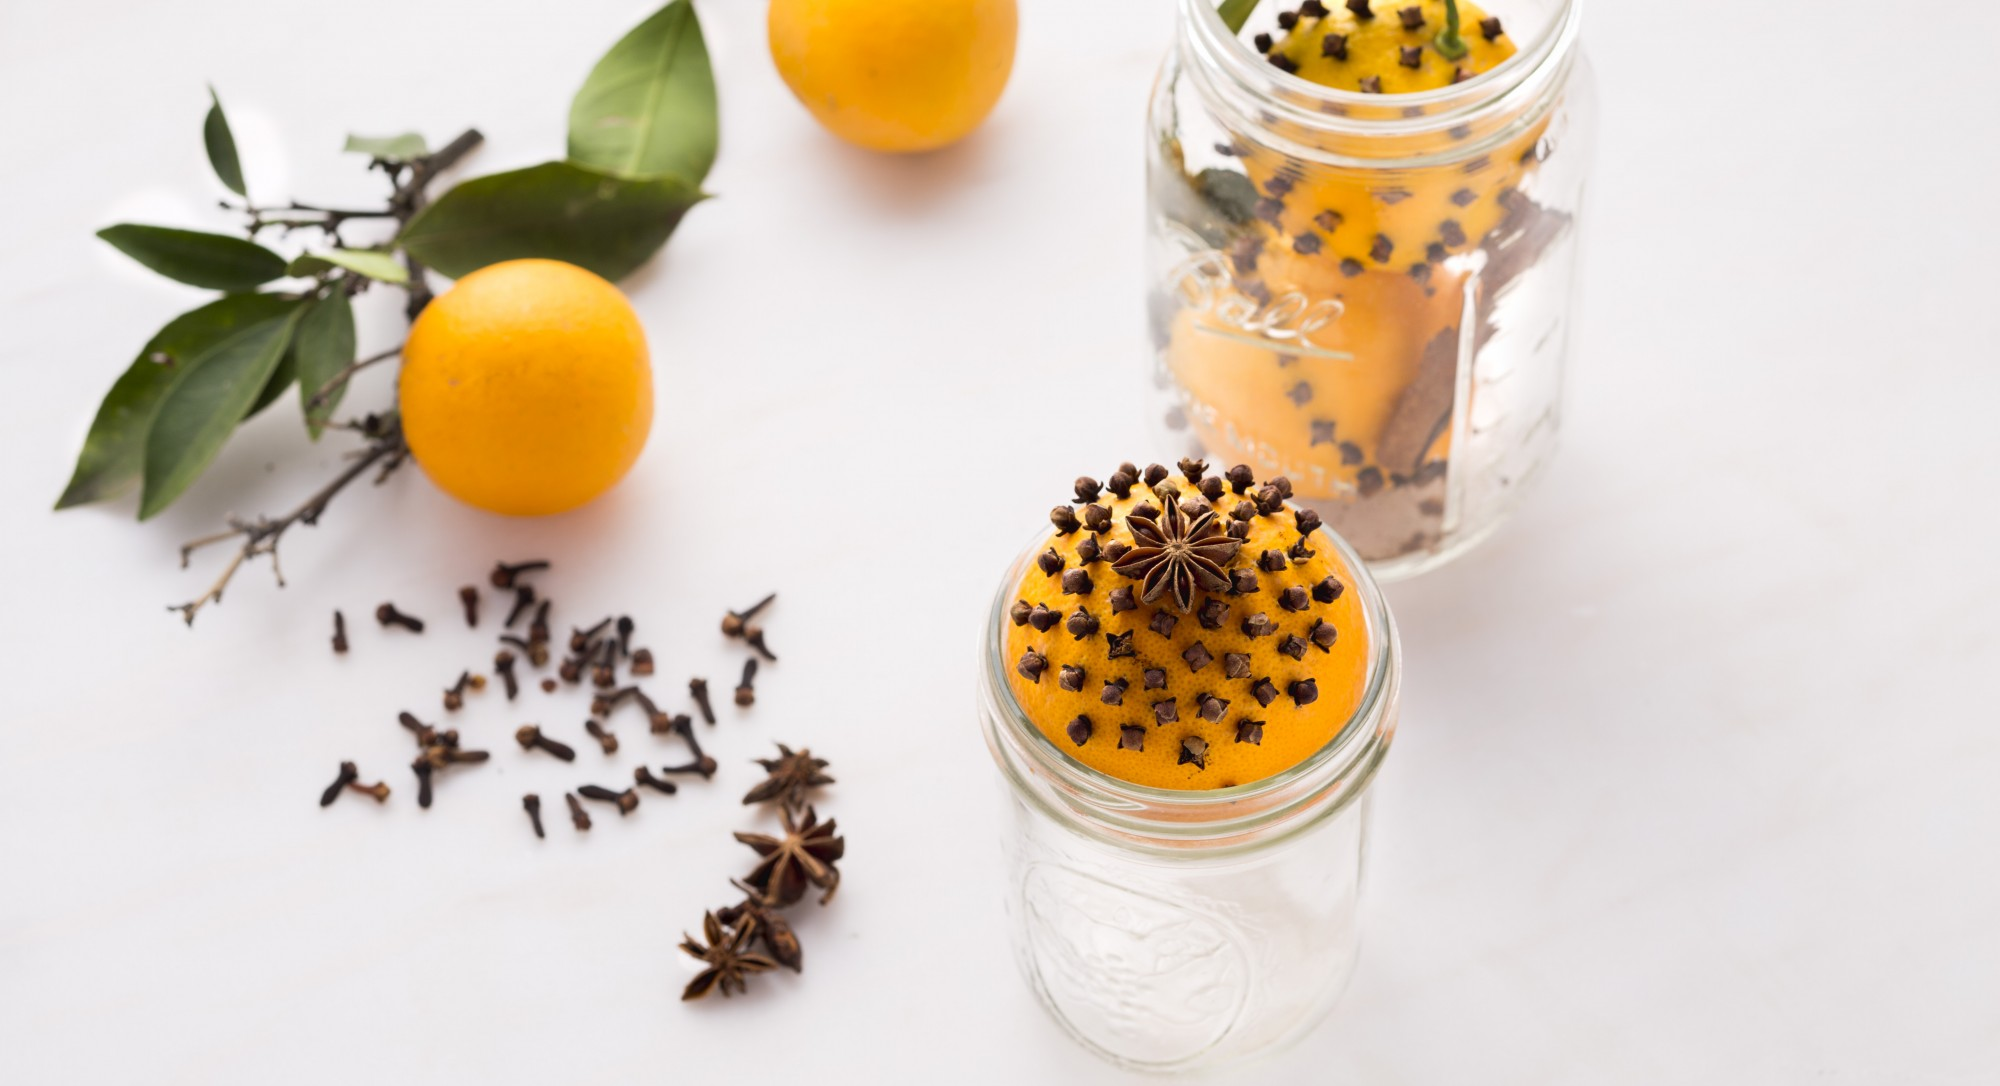 Make Your Home Smell Like Christmas With These 8 All-Natural DIY Tricks